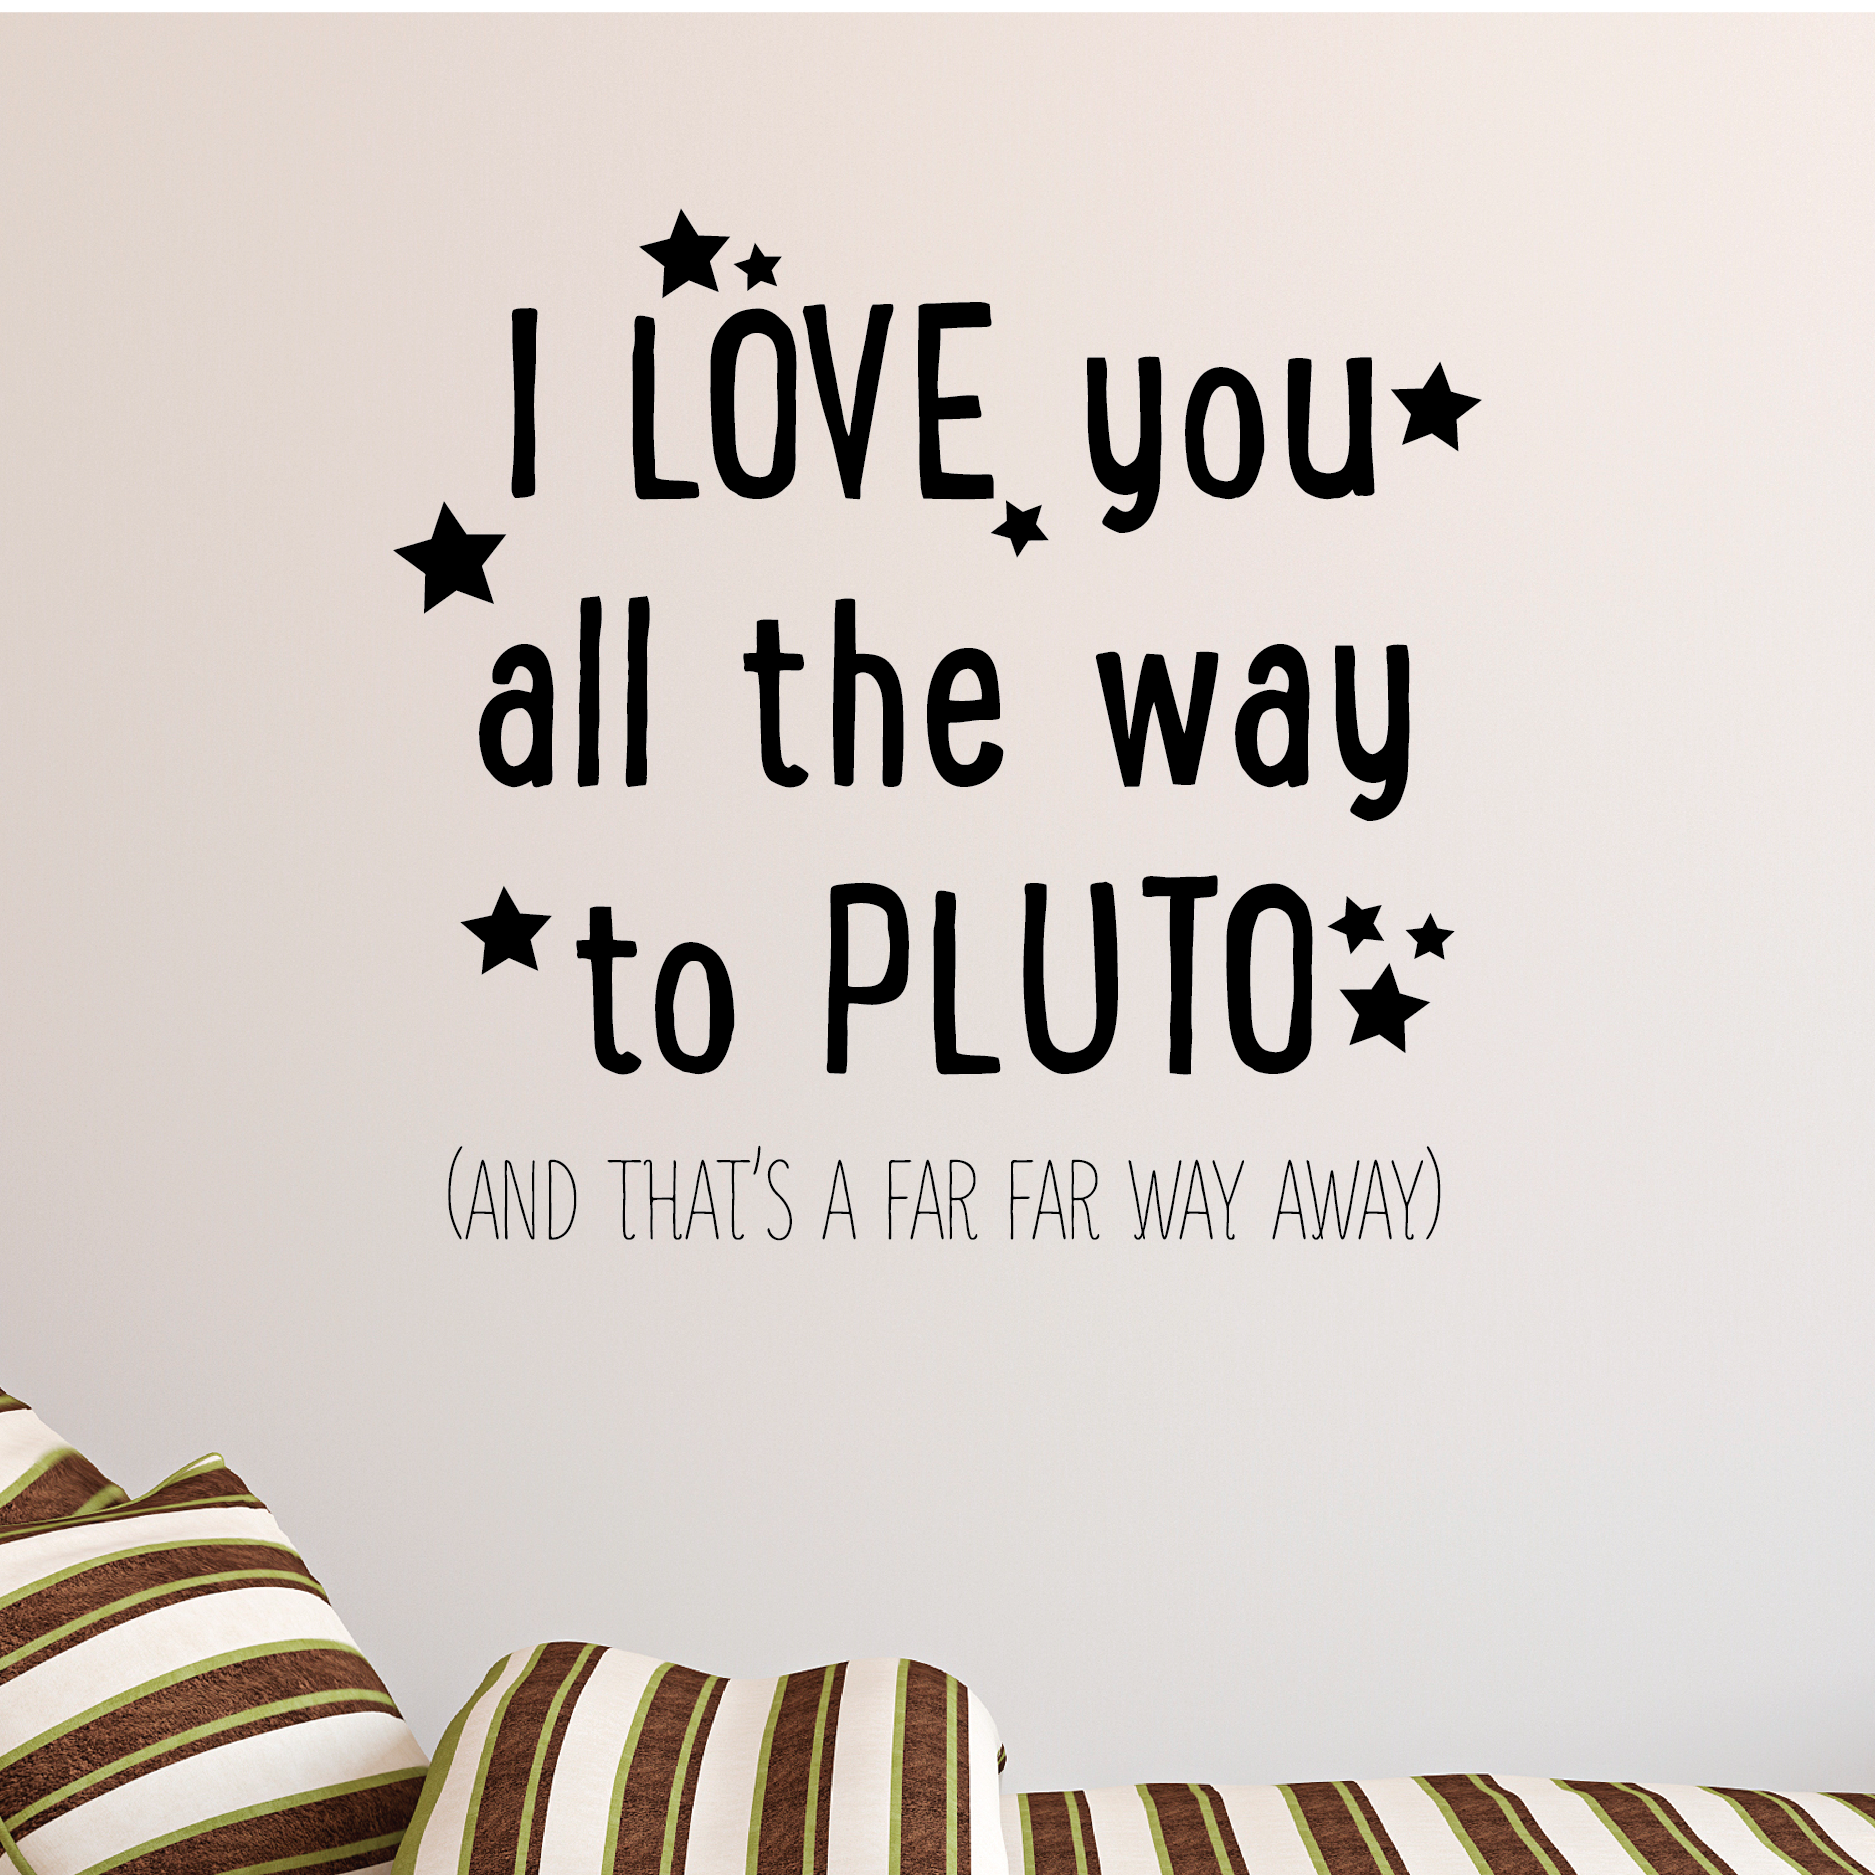 i love you to pluto wall quotes u2122 decal